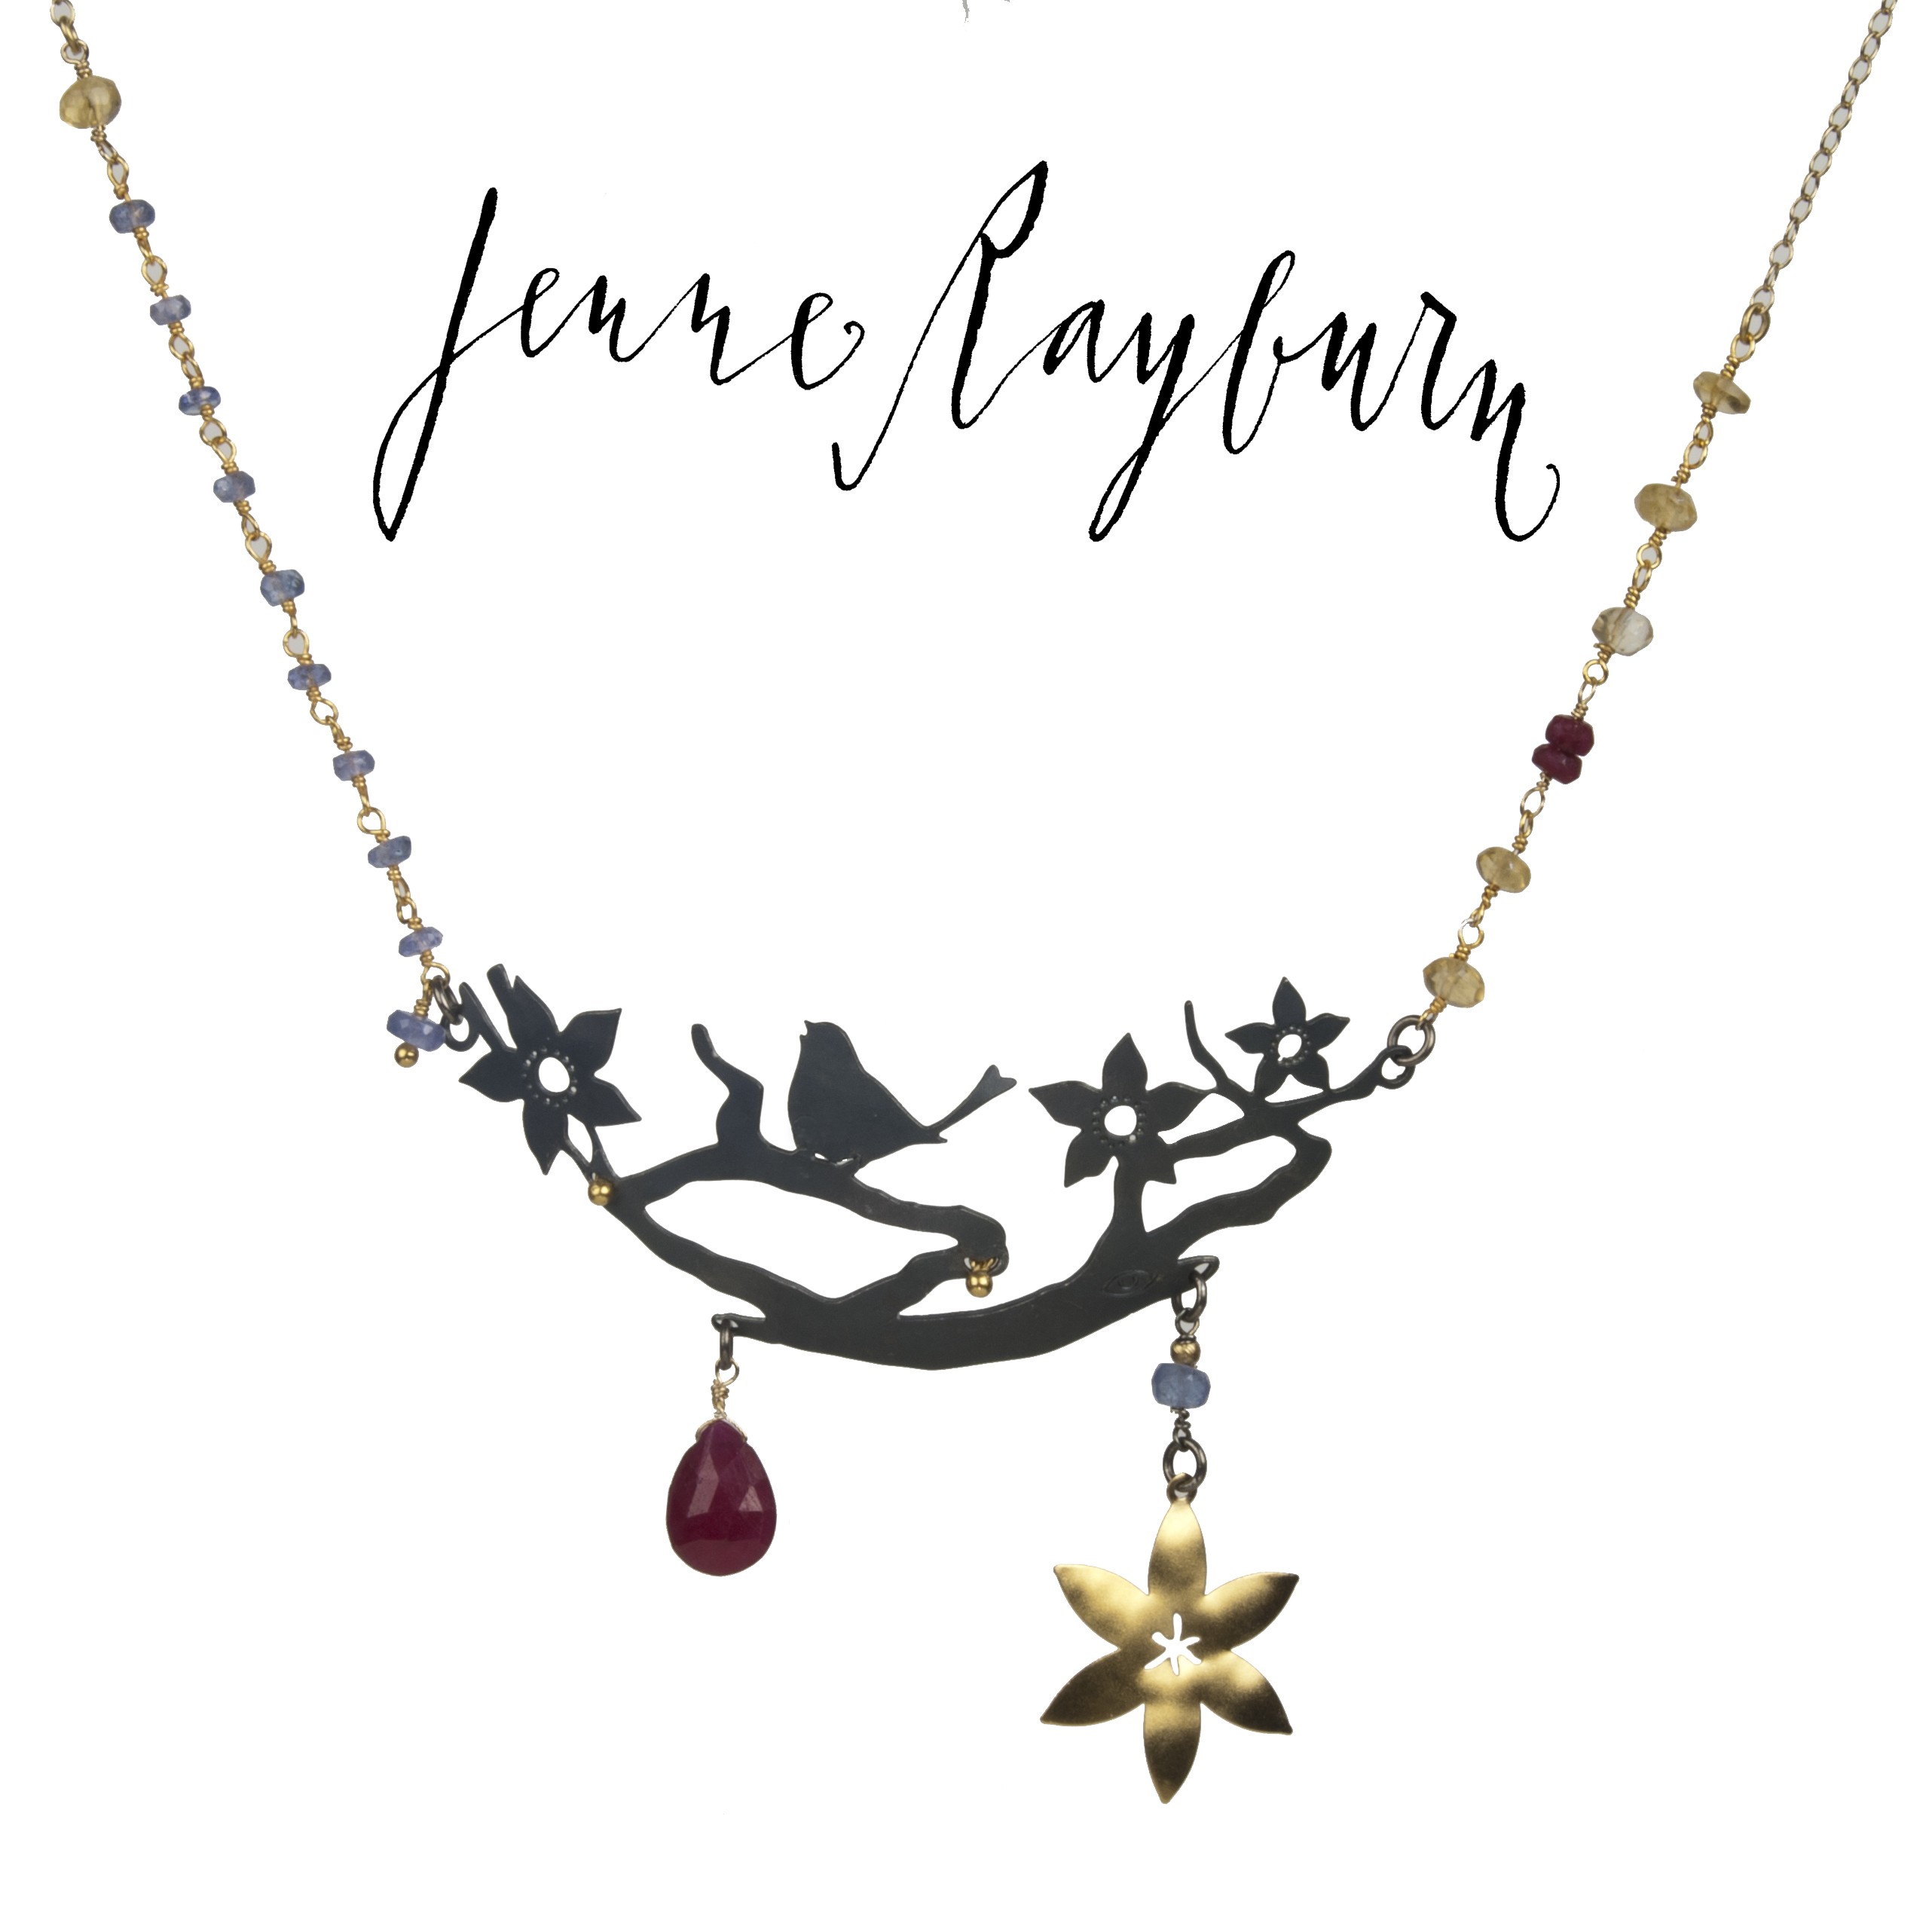 Handcrafted Jewelry Designer Jenne Rayburn Finds